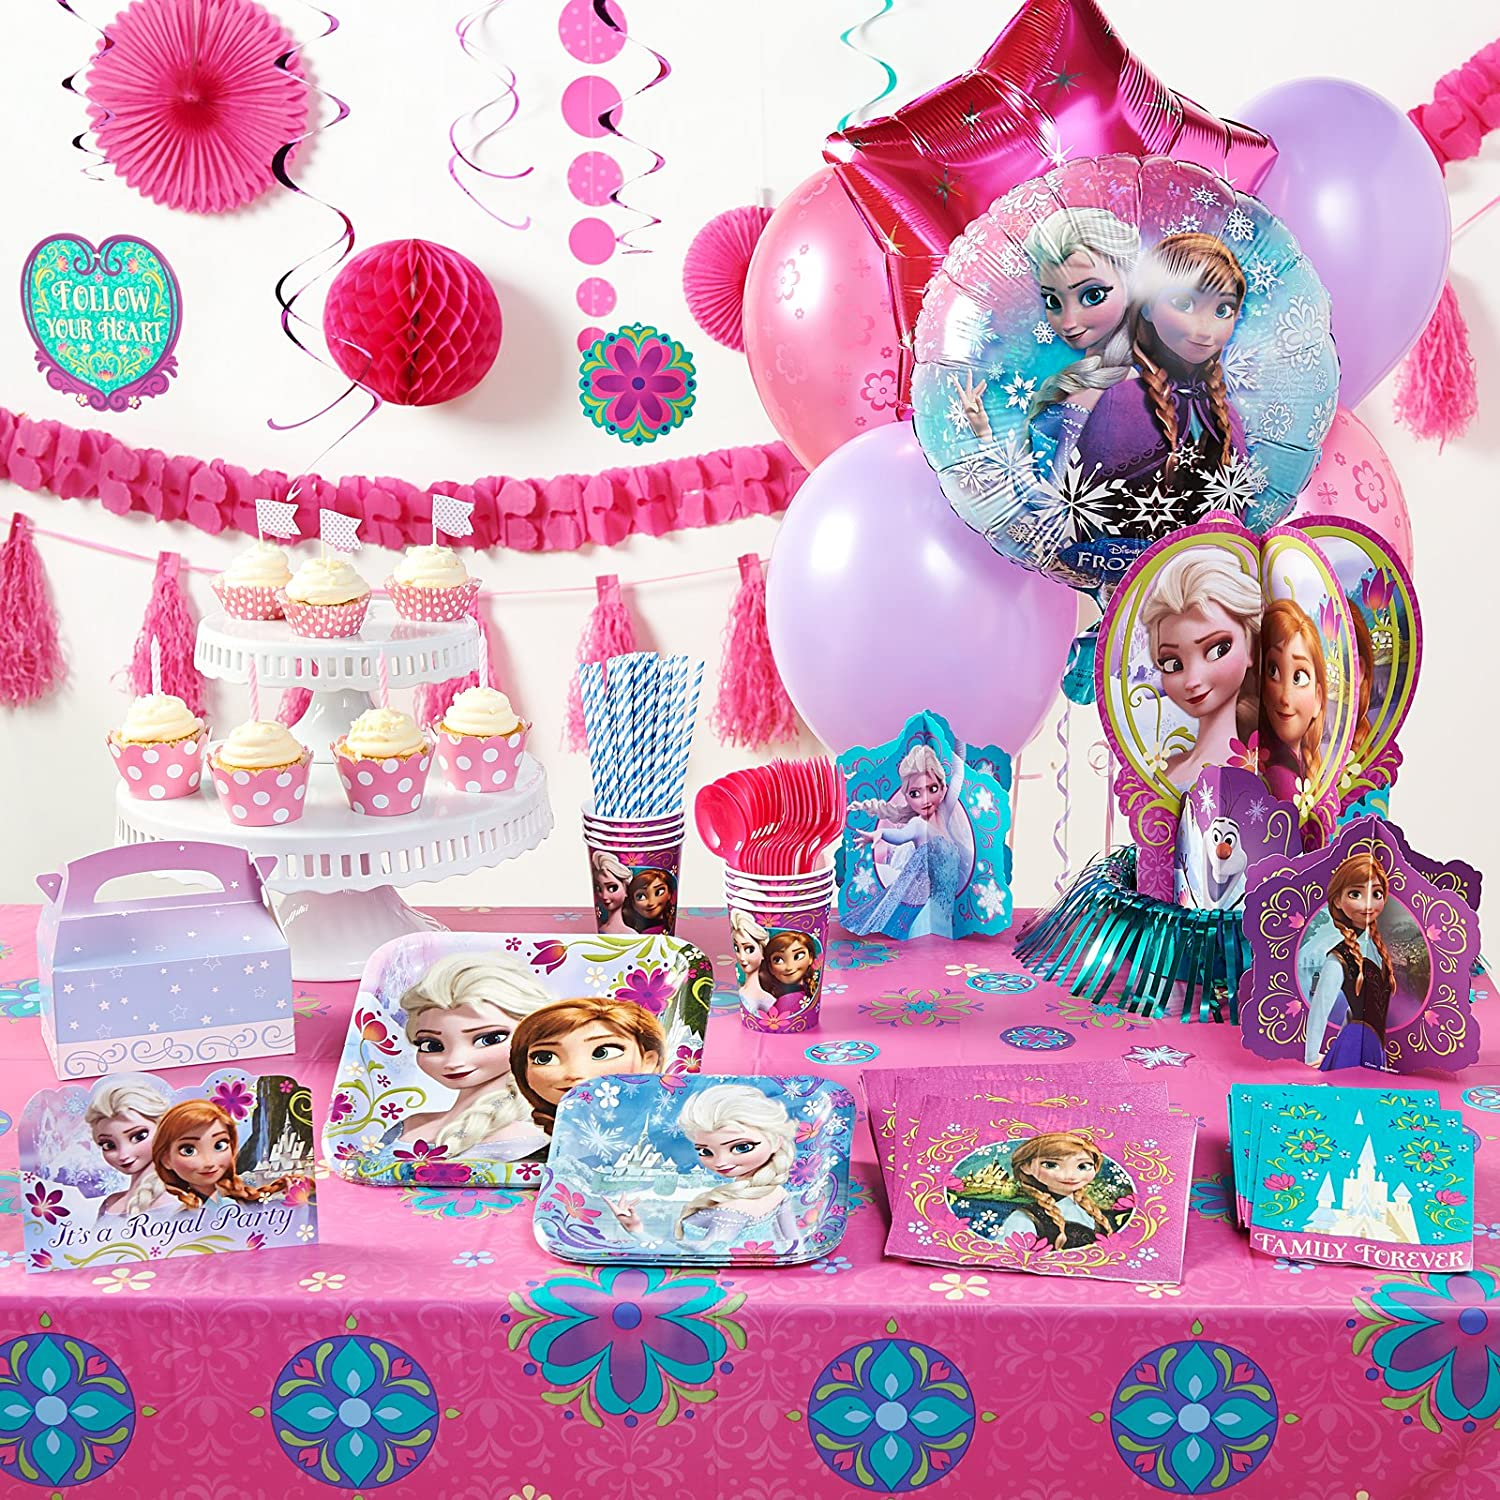 Have the coolest party with this Frozen product! (16) dinner and dessert plates 9-oz. paper cups forks and spoons invitations empty favor boxes ...  sc 1 st  Birthday Girls Wikii - Blogger & Frozen Birthday Party Kits | Birthday Girls Wikii